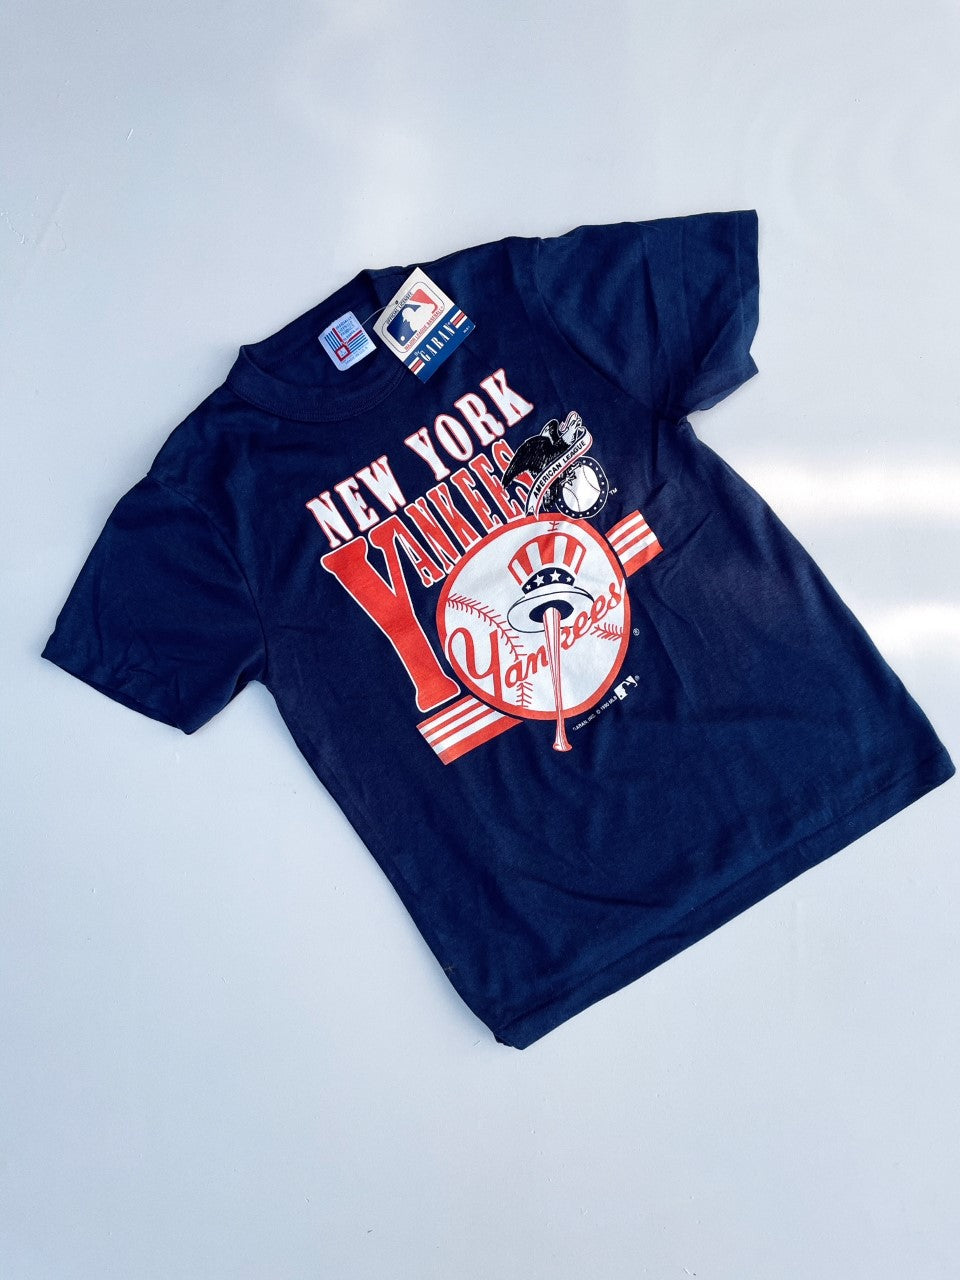 Vintage New York Yankees NWT T-shirt Size Youth 14-16 Years